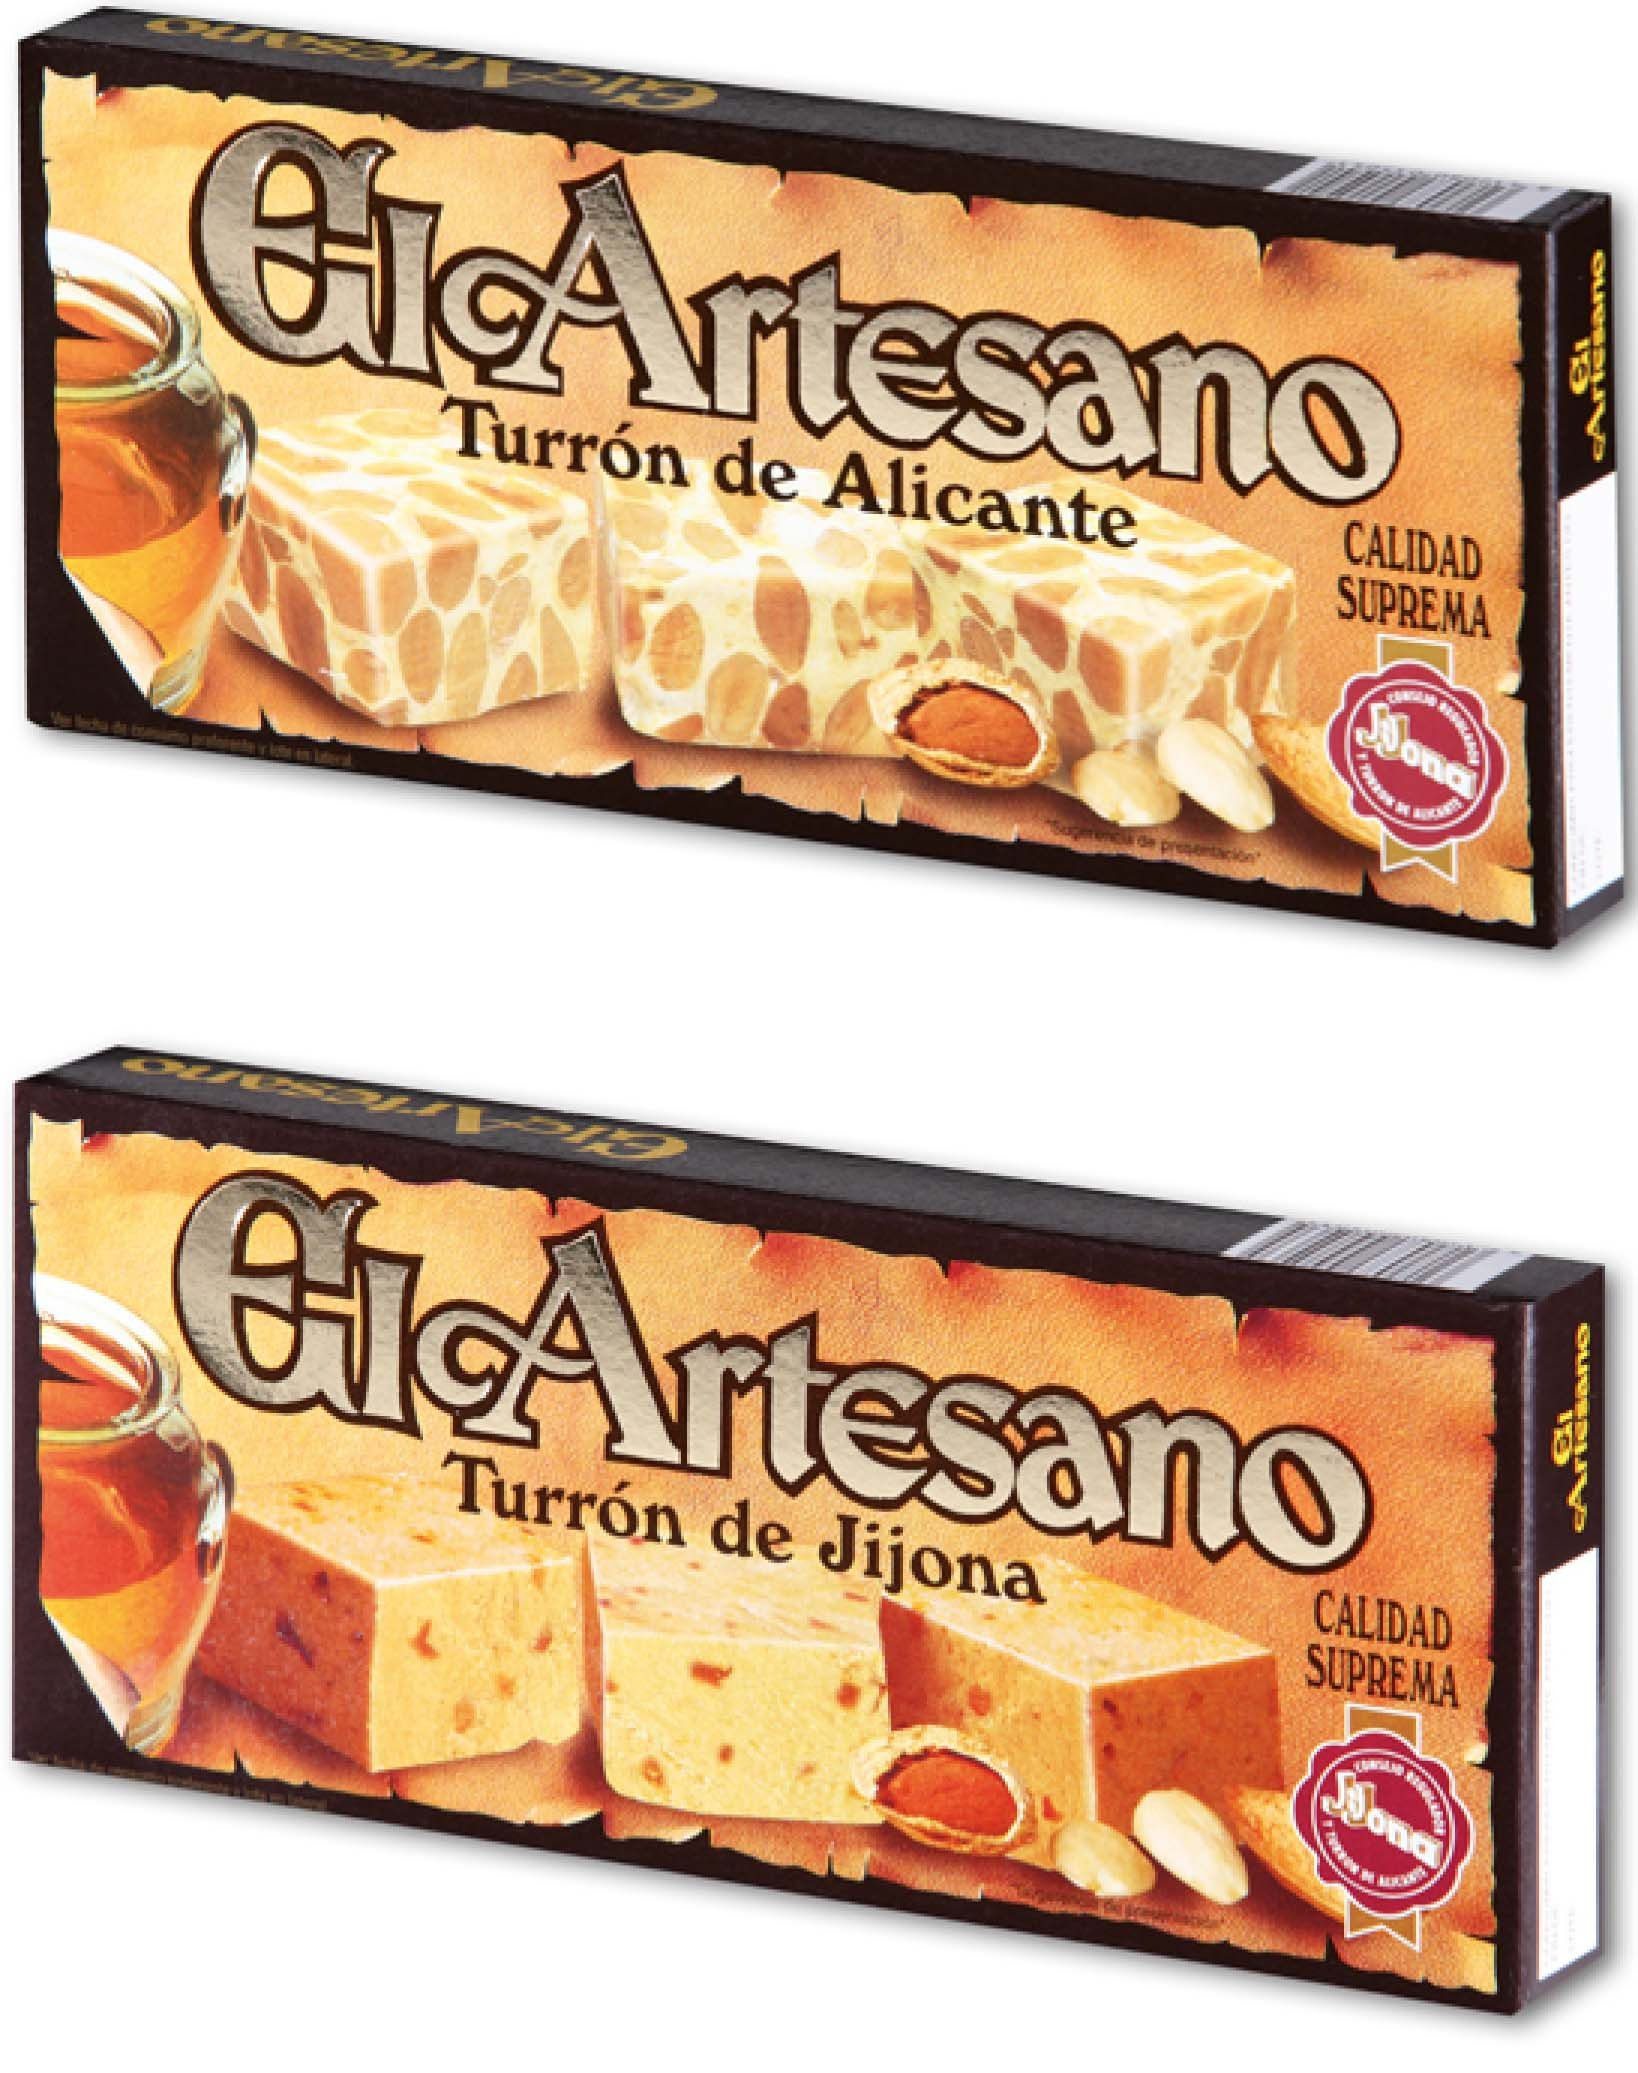 El Artesano Combo pack of 12 with 6 units of Crunchy Almond Alicante Turron (Turron de Alicante Duro) 7 Oz (200 G) bundle with 6 units of Jijona Turron Almond Nougat 7 oz (200g) each unit by El Artesano